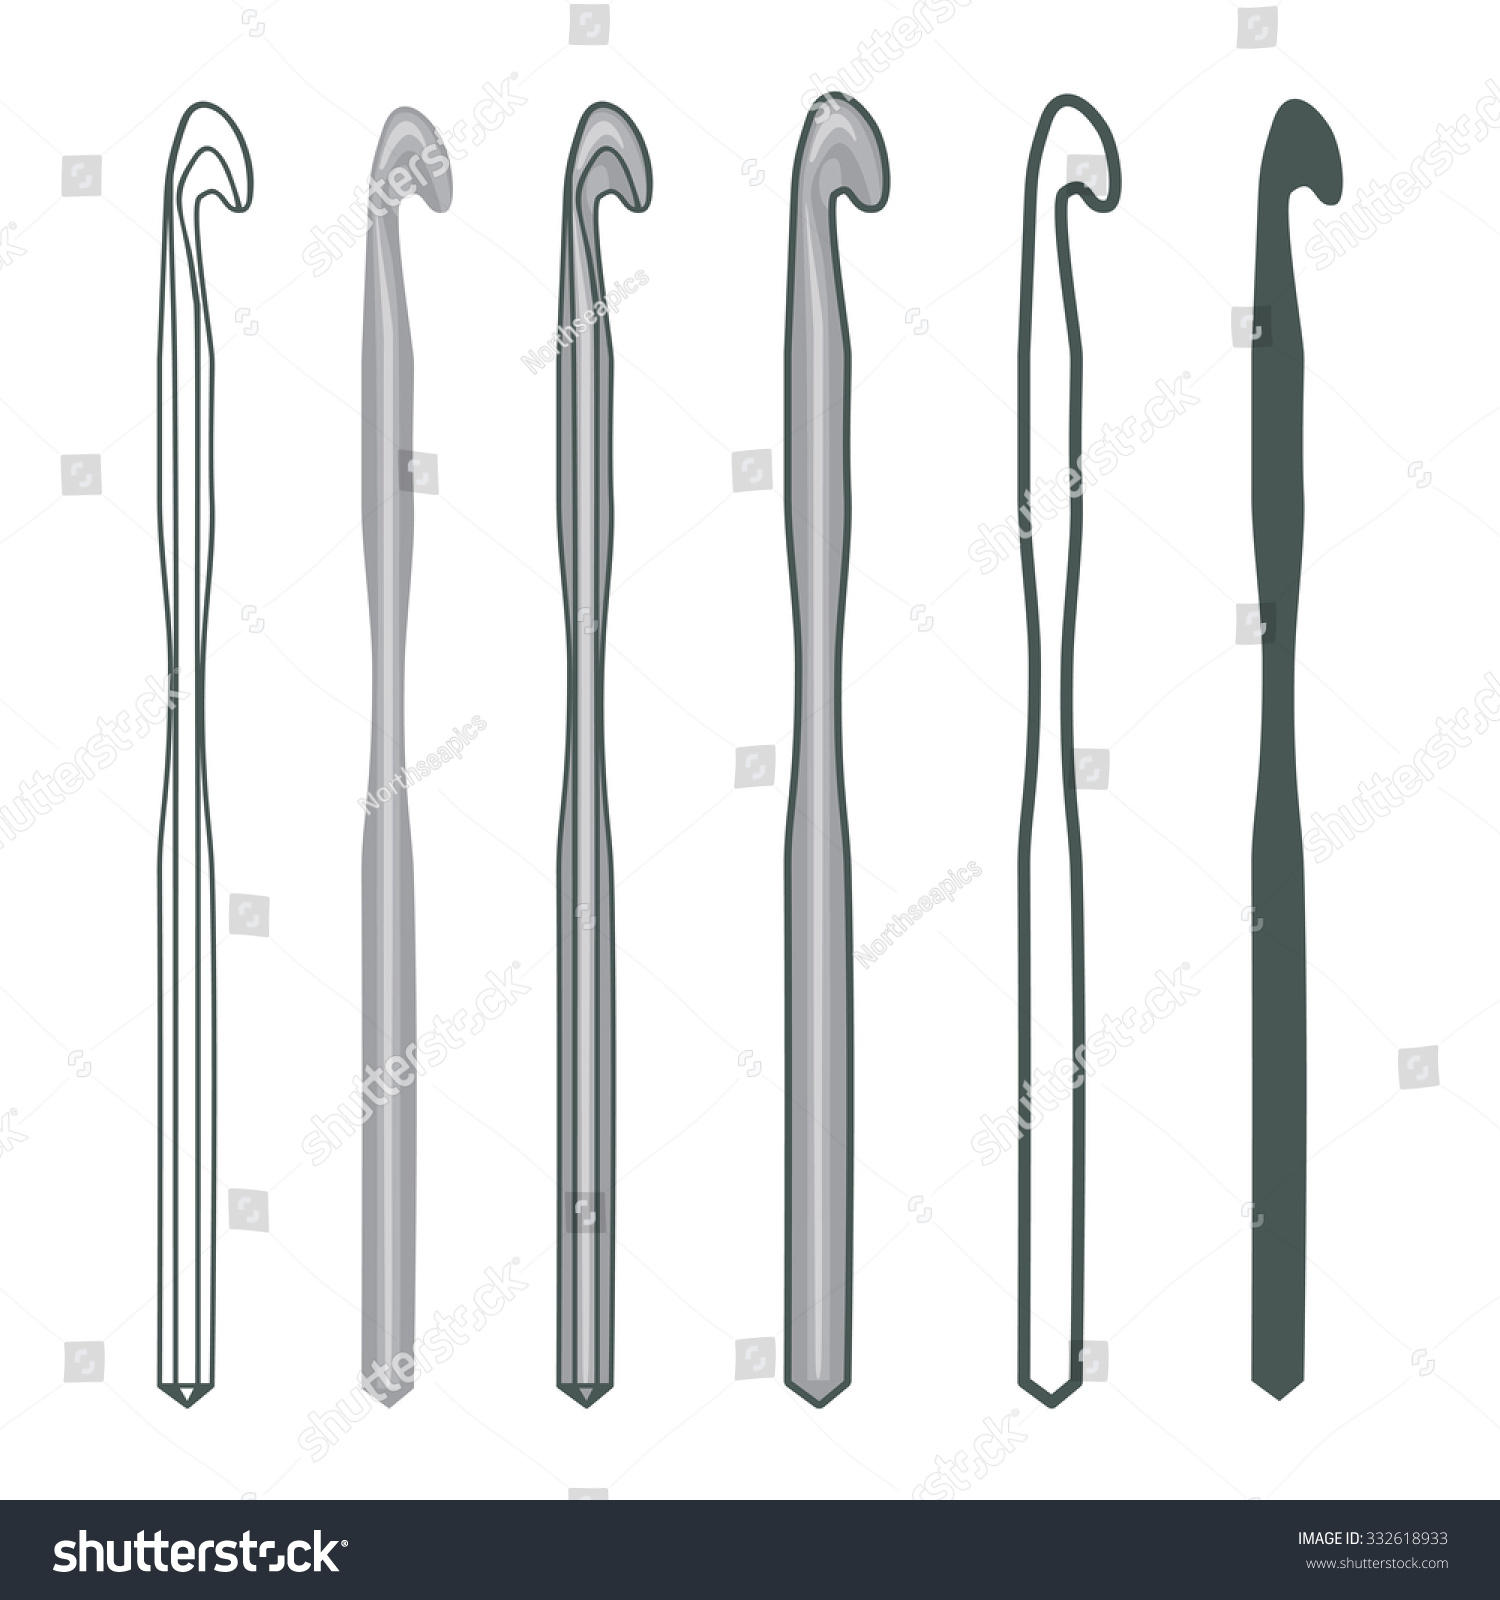 Crochet Hook (Vector Set Collection) - 258.6KB